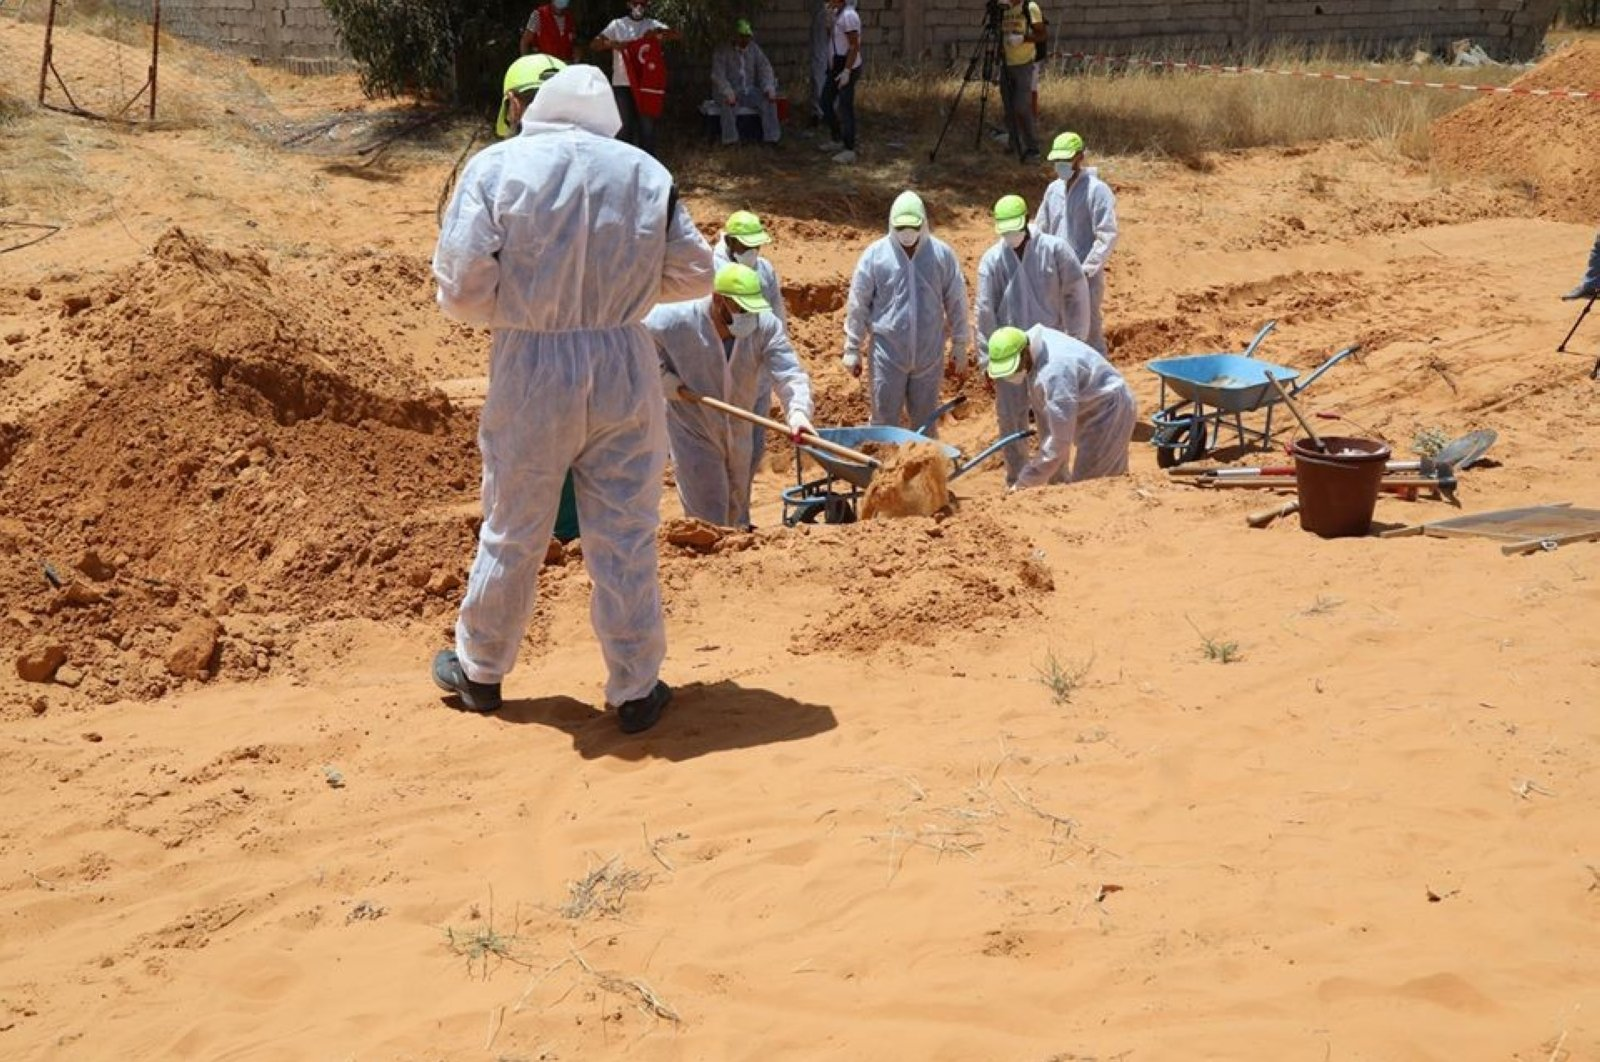 Libyan Army members dig a mass grave of people killed by Haftar militia, Tarhuna, June 11, 2020. (IHA)